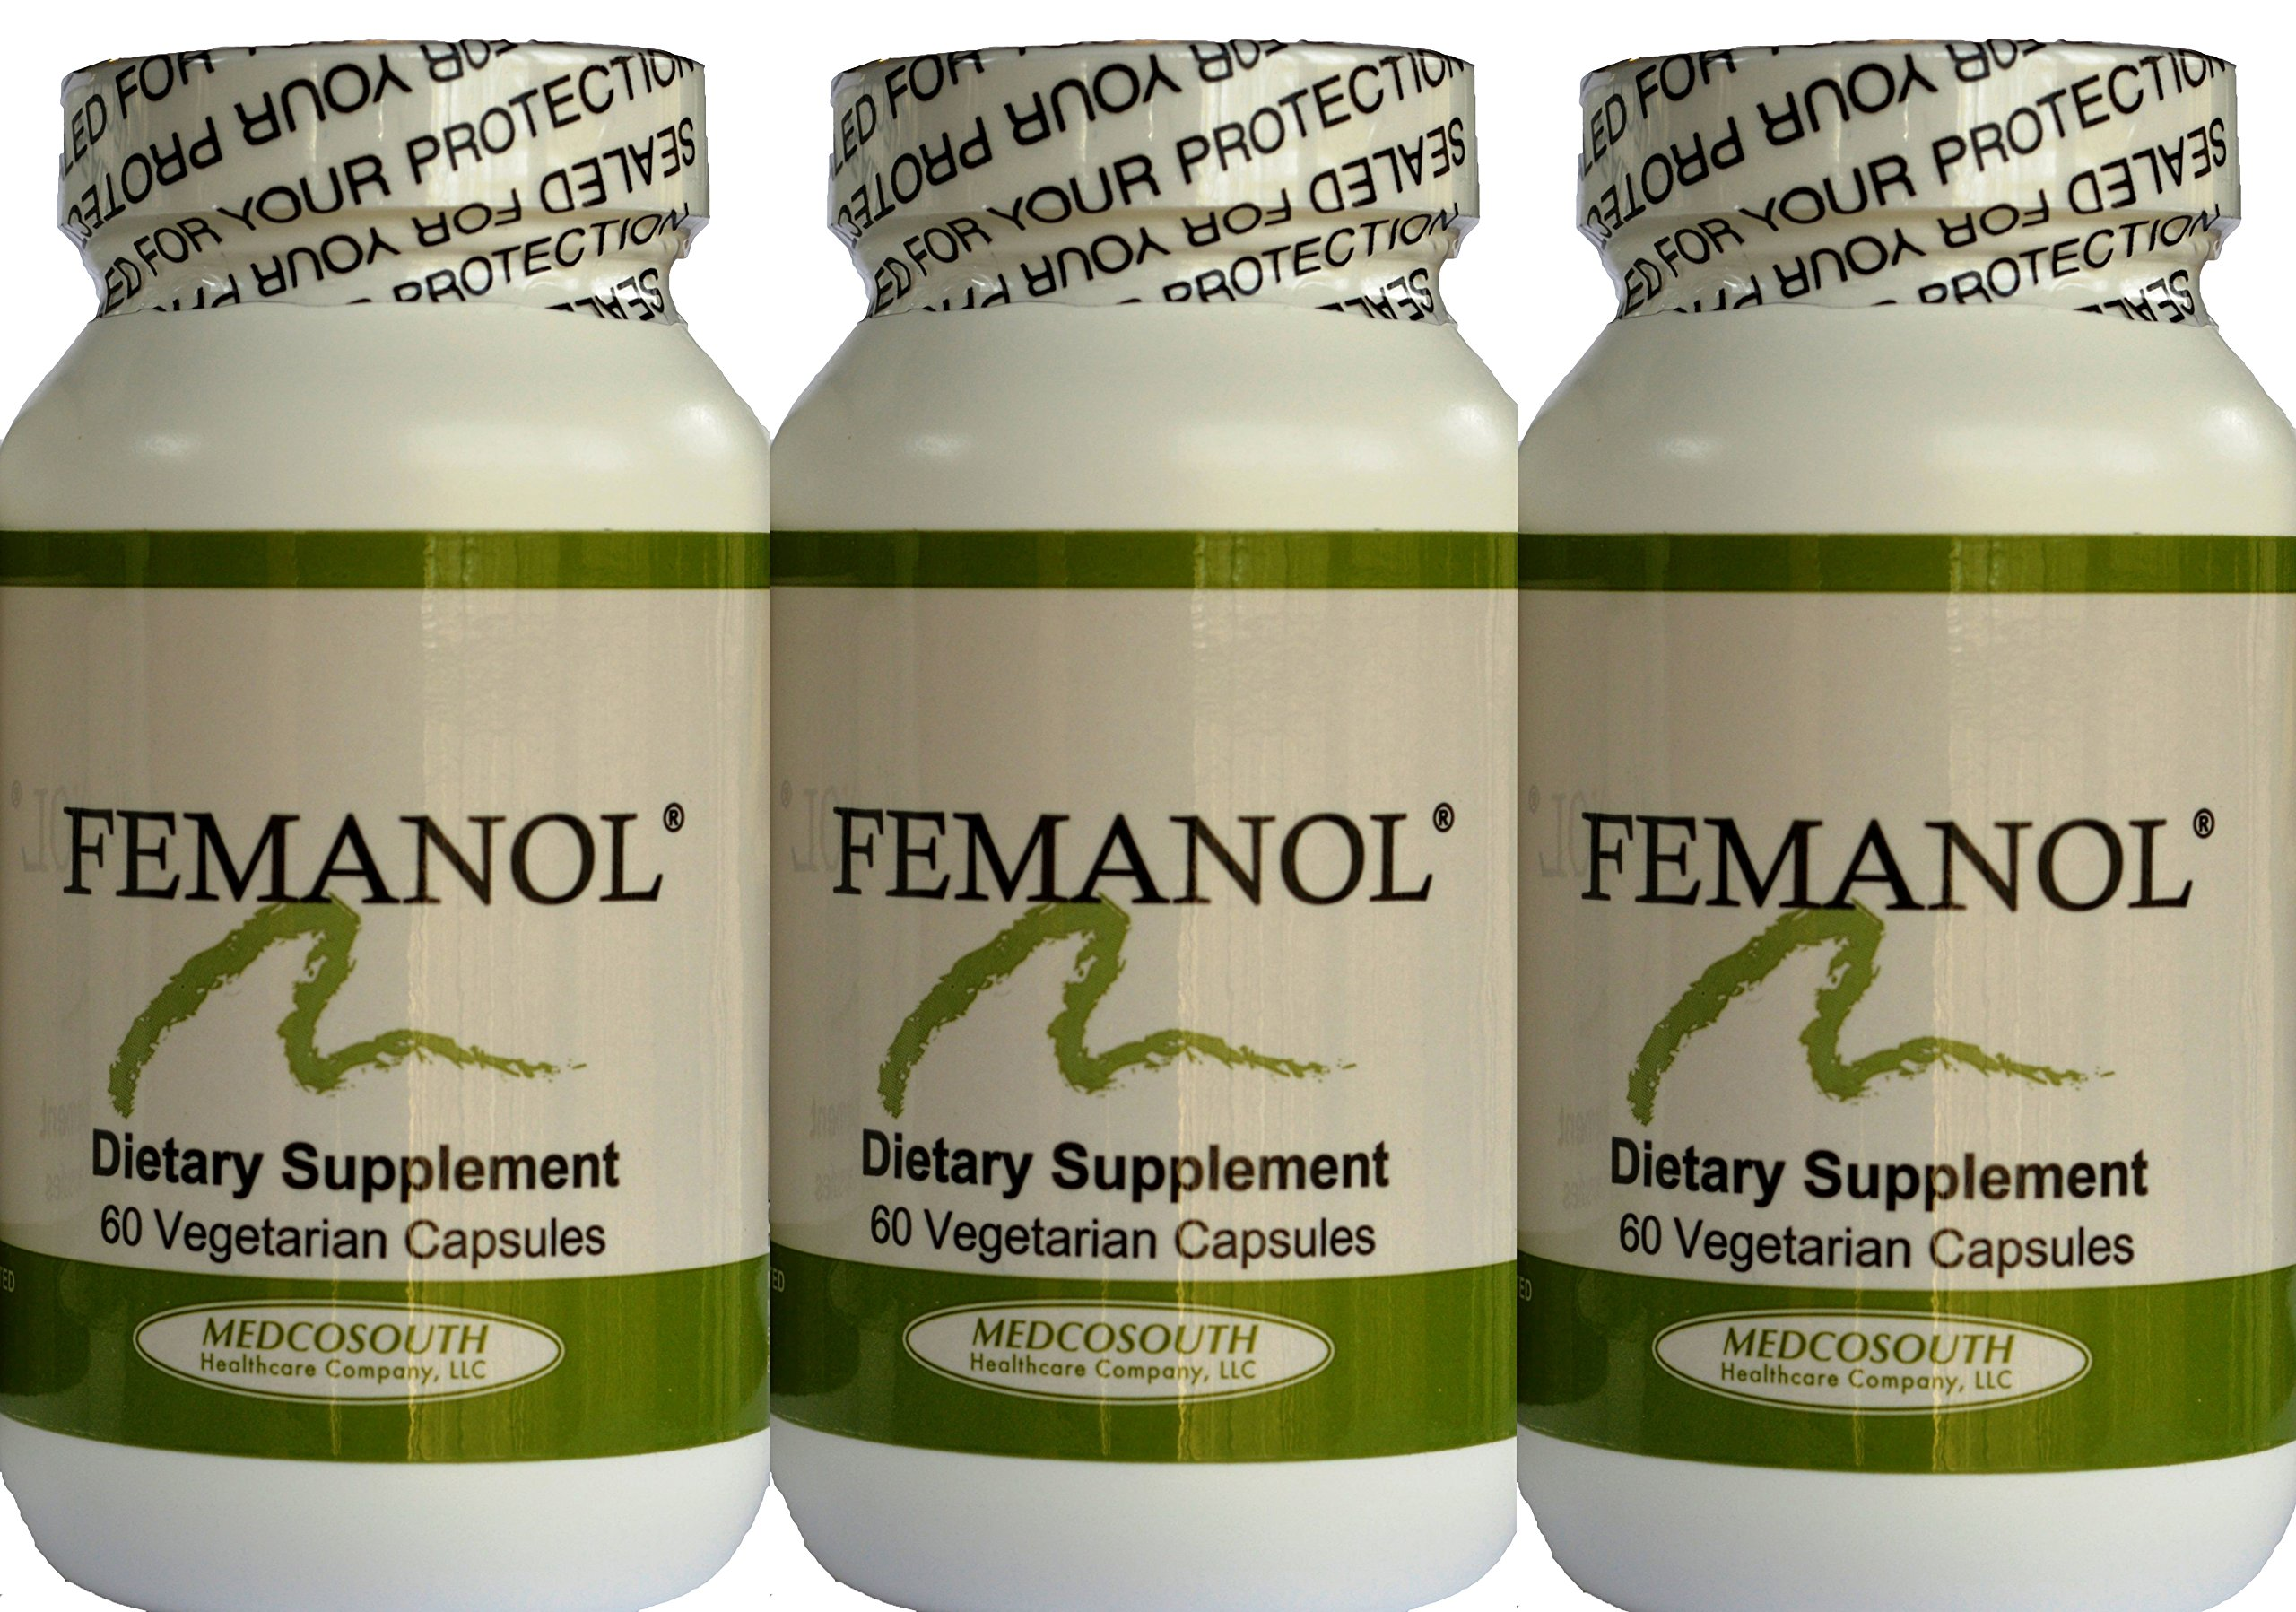 Femanol (3) Bottles 60/count Supports Normal Healthy Feminine and Vaginal Odor by MedcoSouth